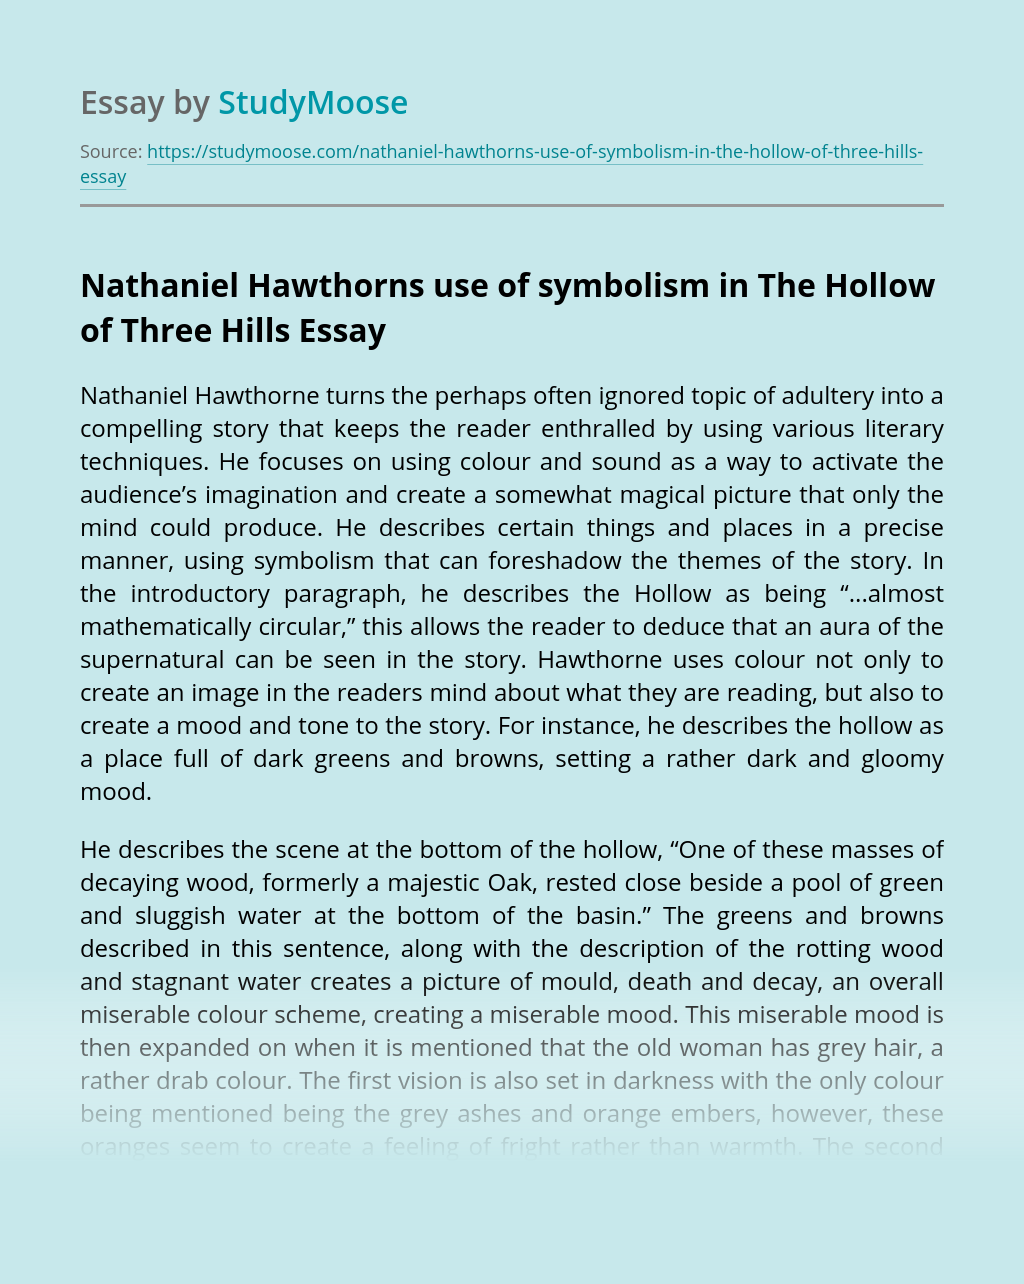 Nathaniel Hawthorns use of symbolism in The Hollow of Three Hills